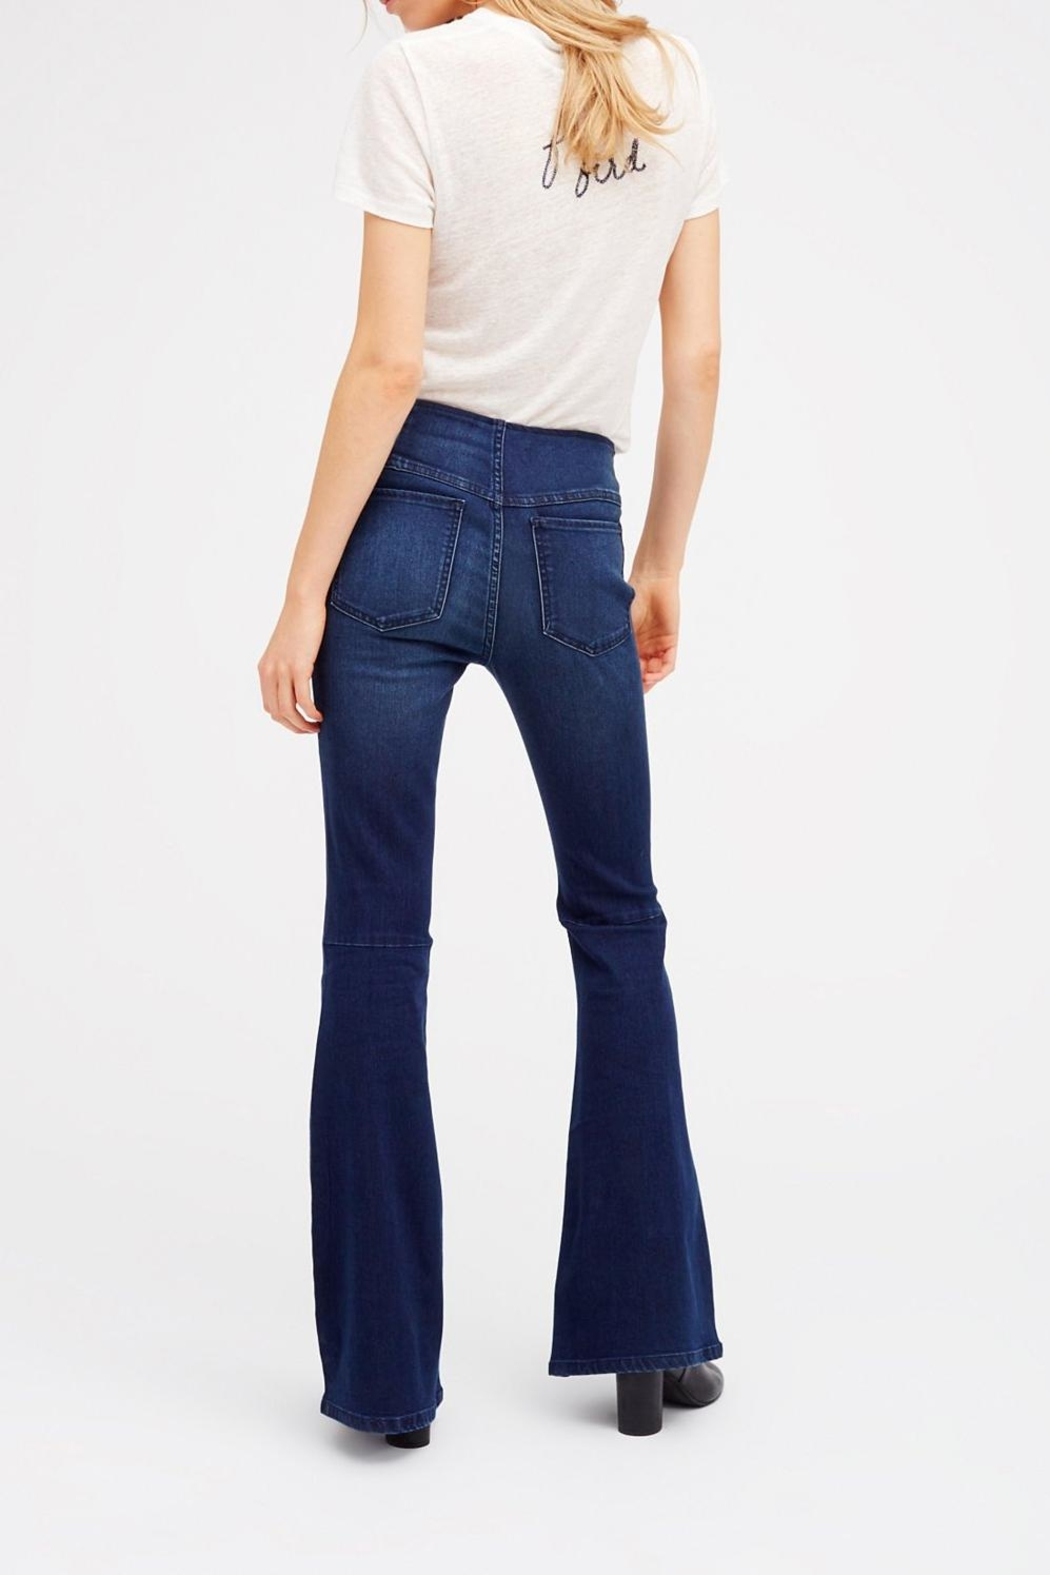 Free People Pull On Flare Jeans - Front Full Image